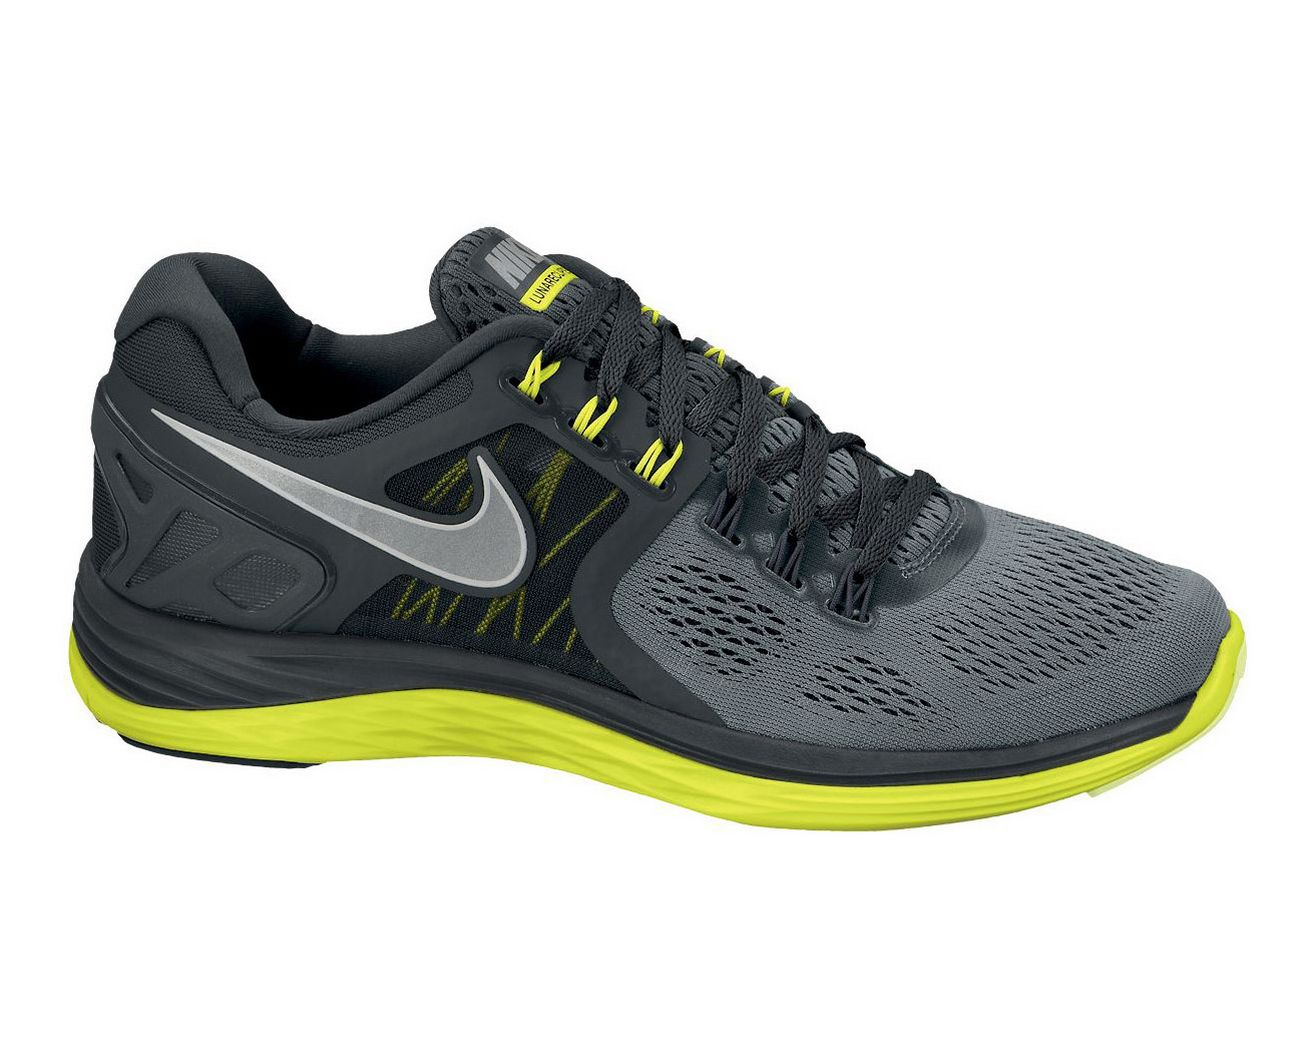 Nike Lunar Eclipse Running Shoes